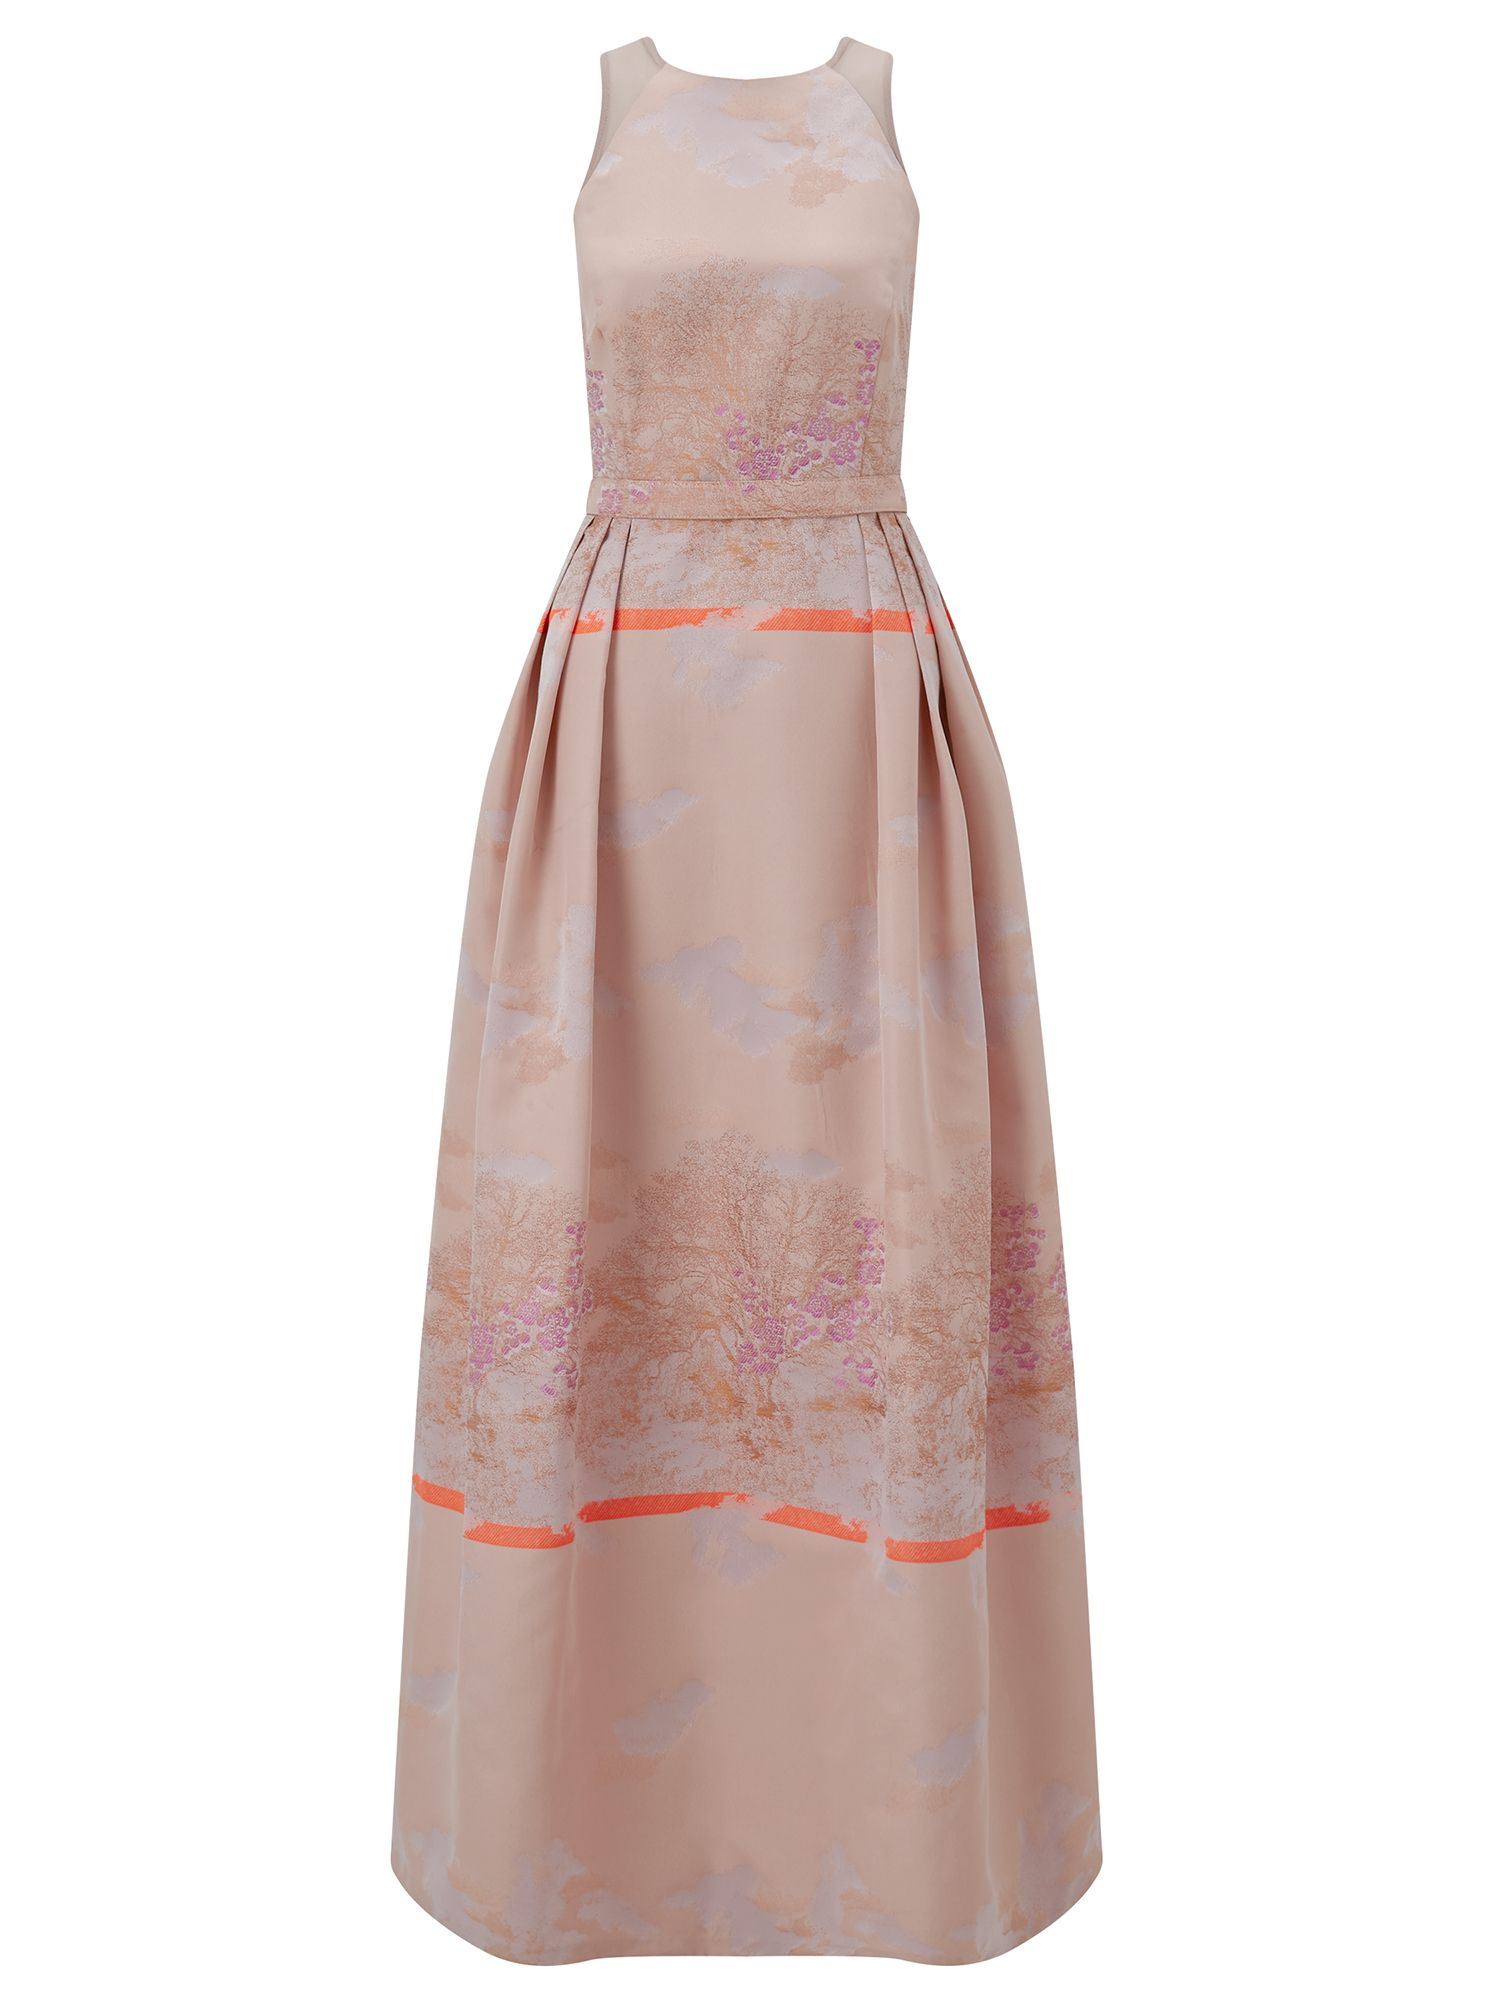 Ariella Couture Bevan Pink Jacquard Maxi Dress, Pink